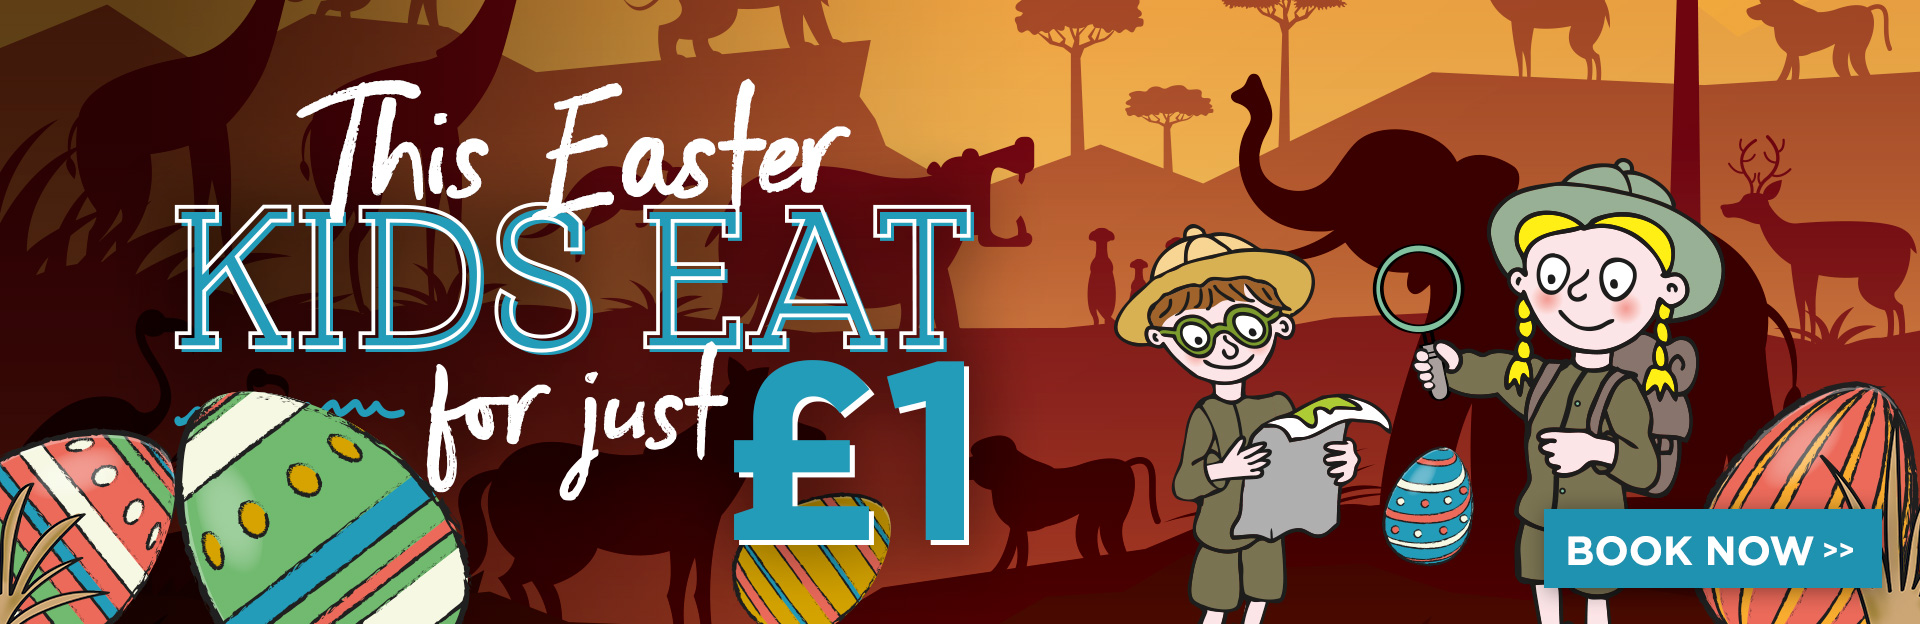 Kids Eat for £1 at The Astley Arms